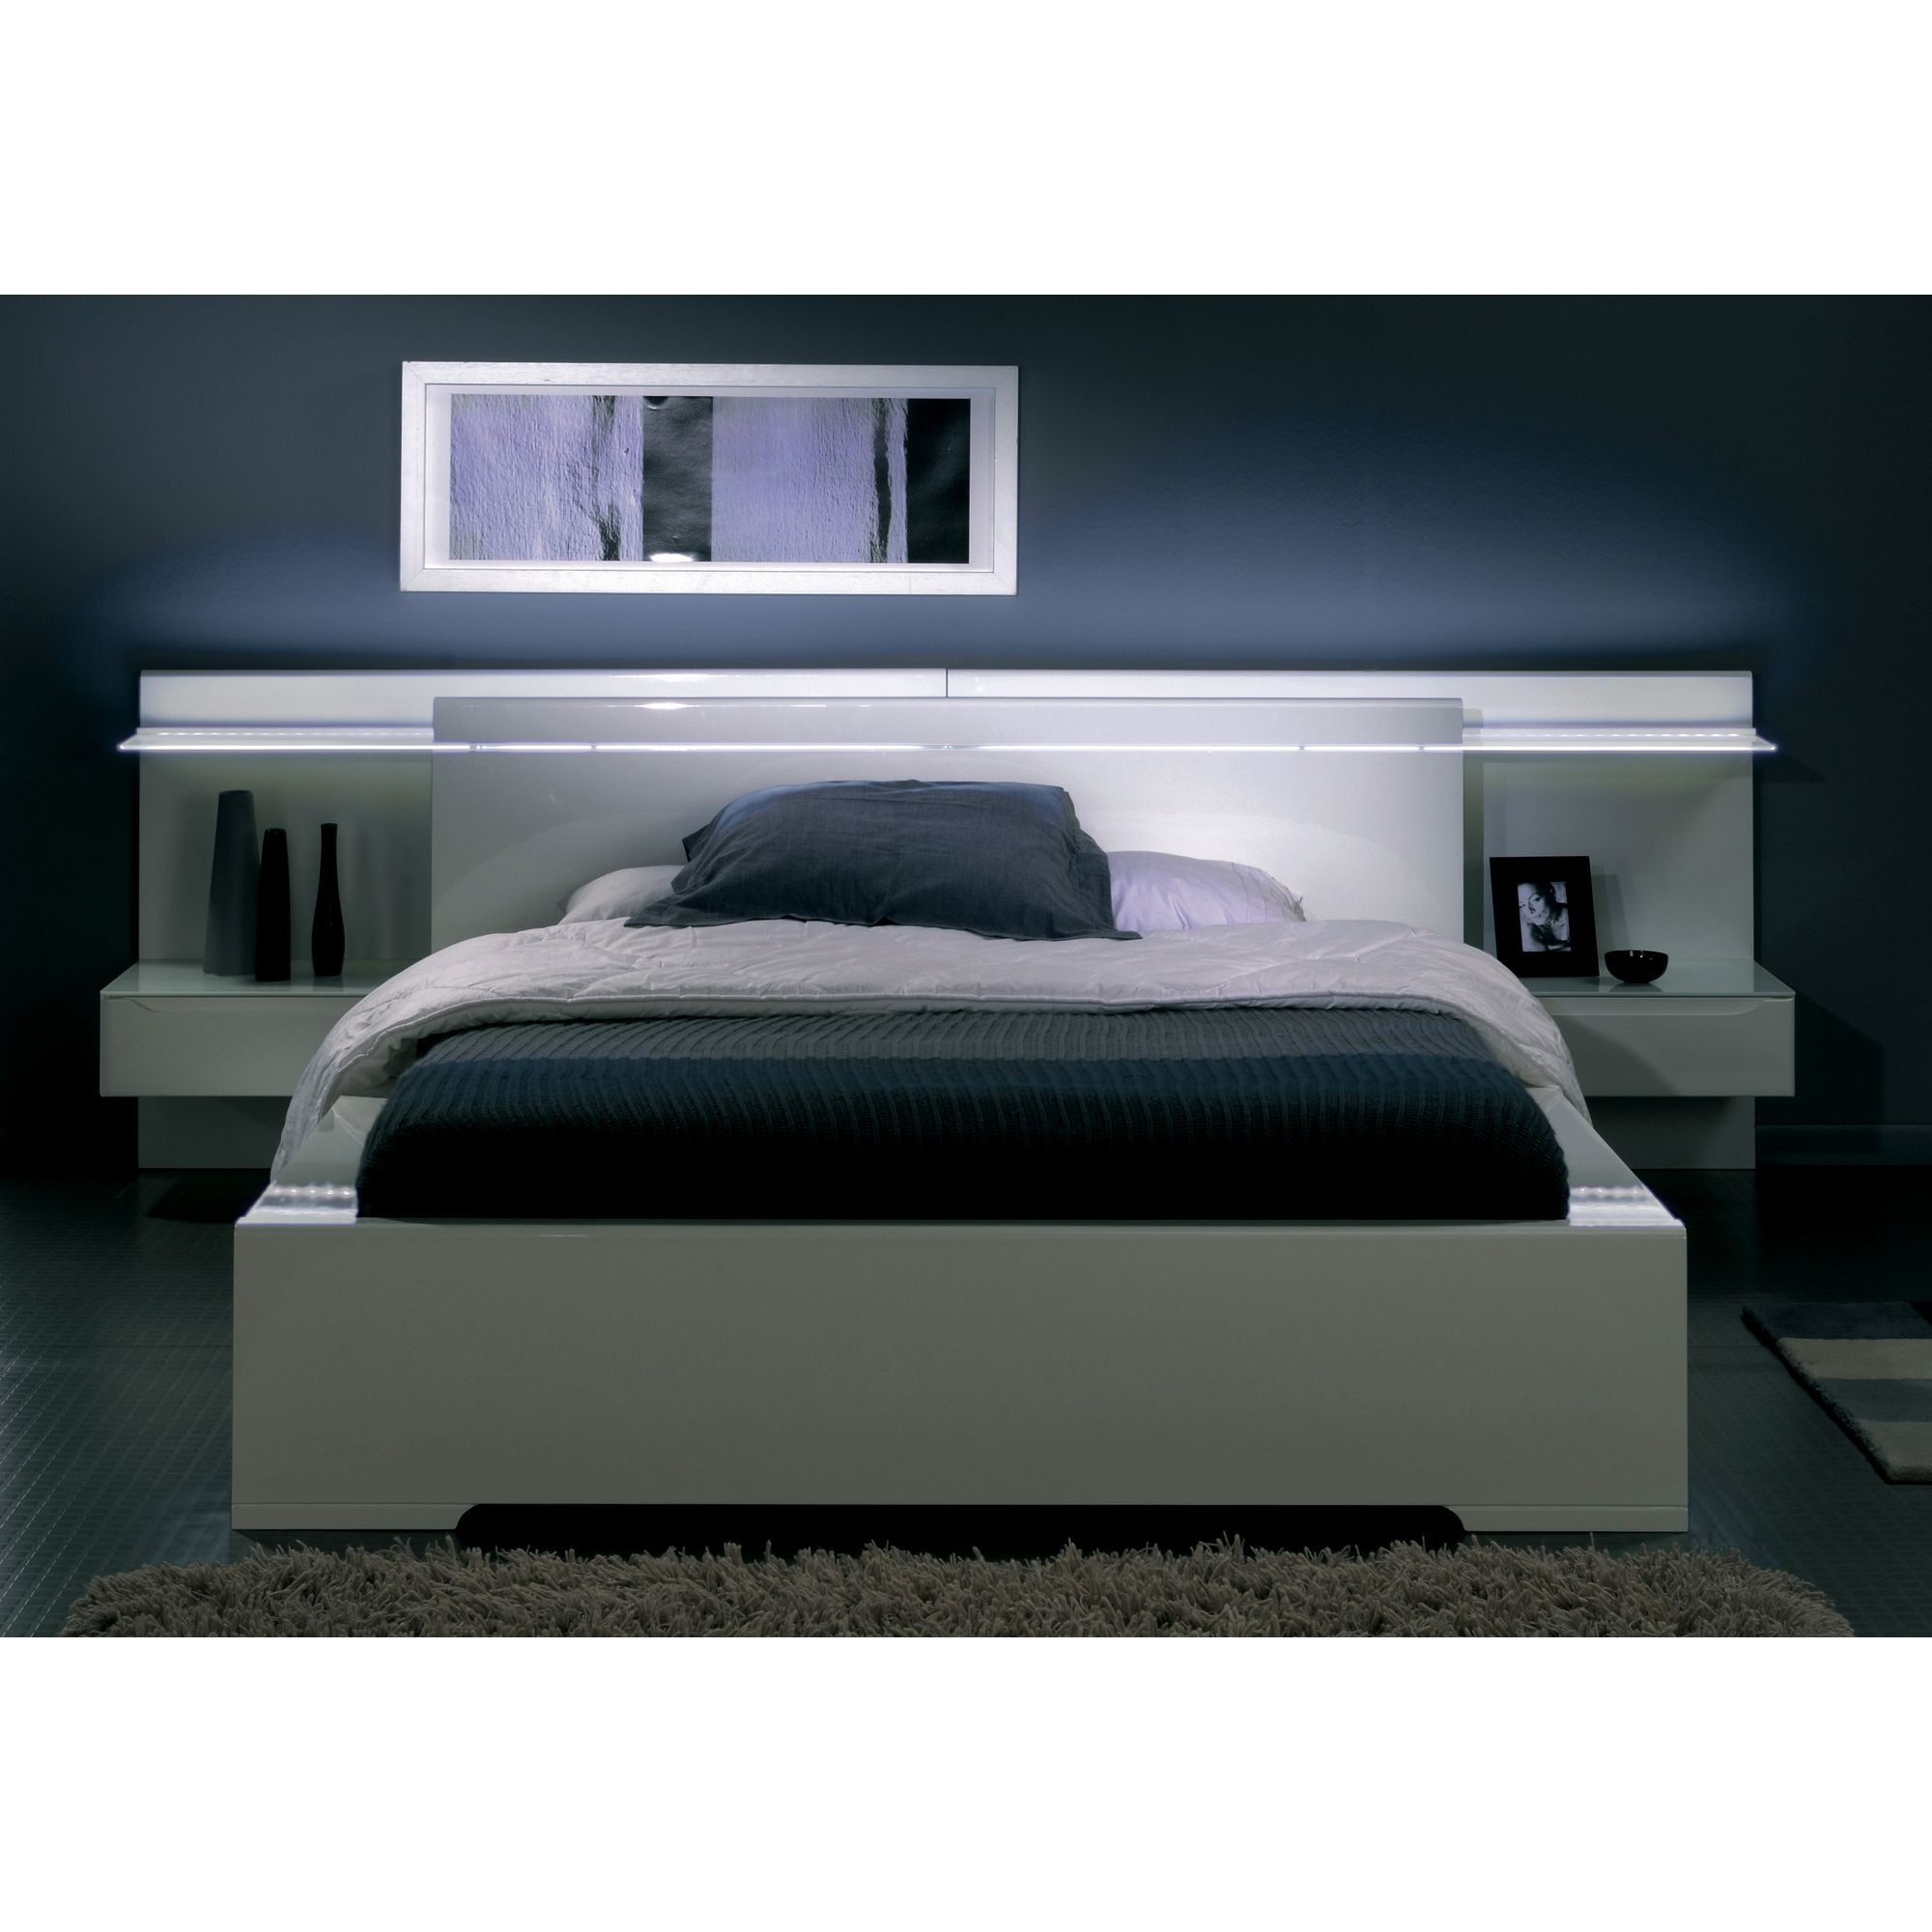 Parisot Ambynight Headboard in White - 85 cm x 133 cm x 37 cm at Tesco Direct